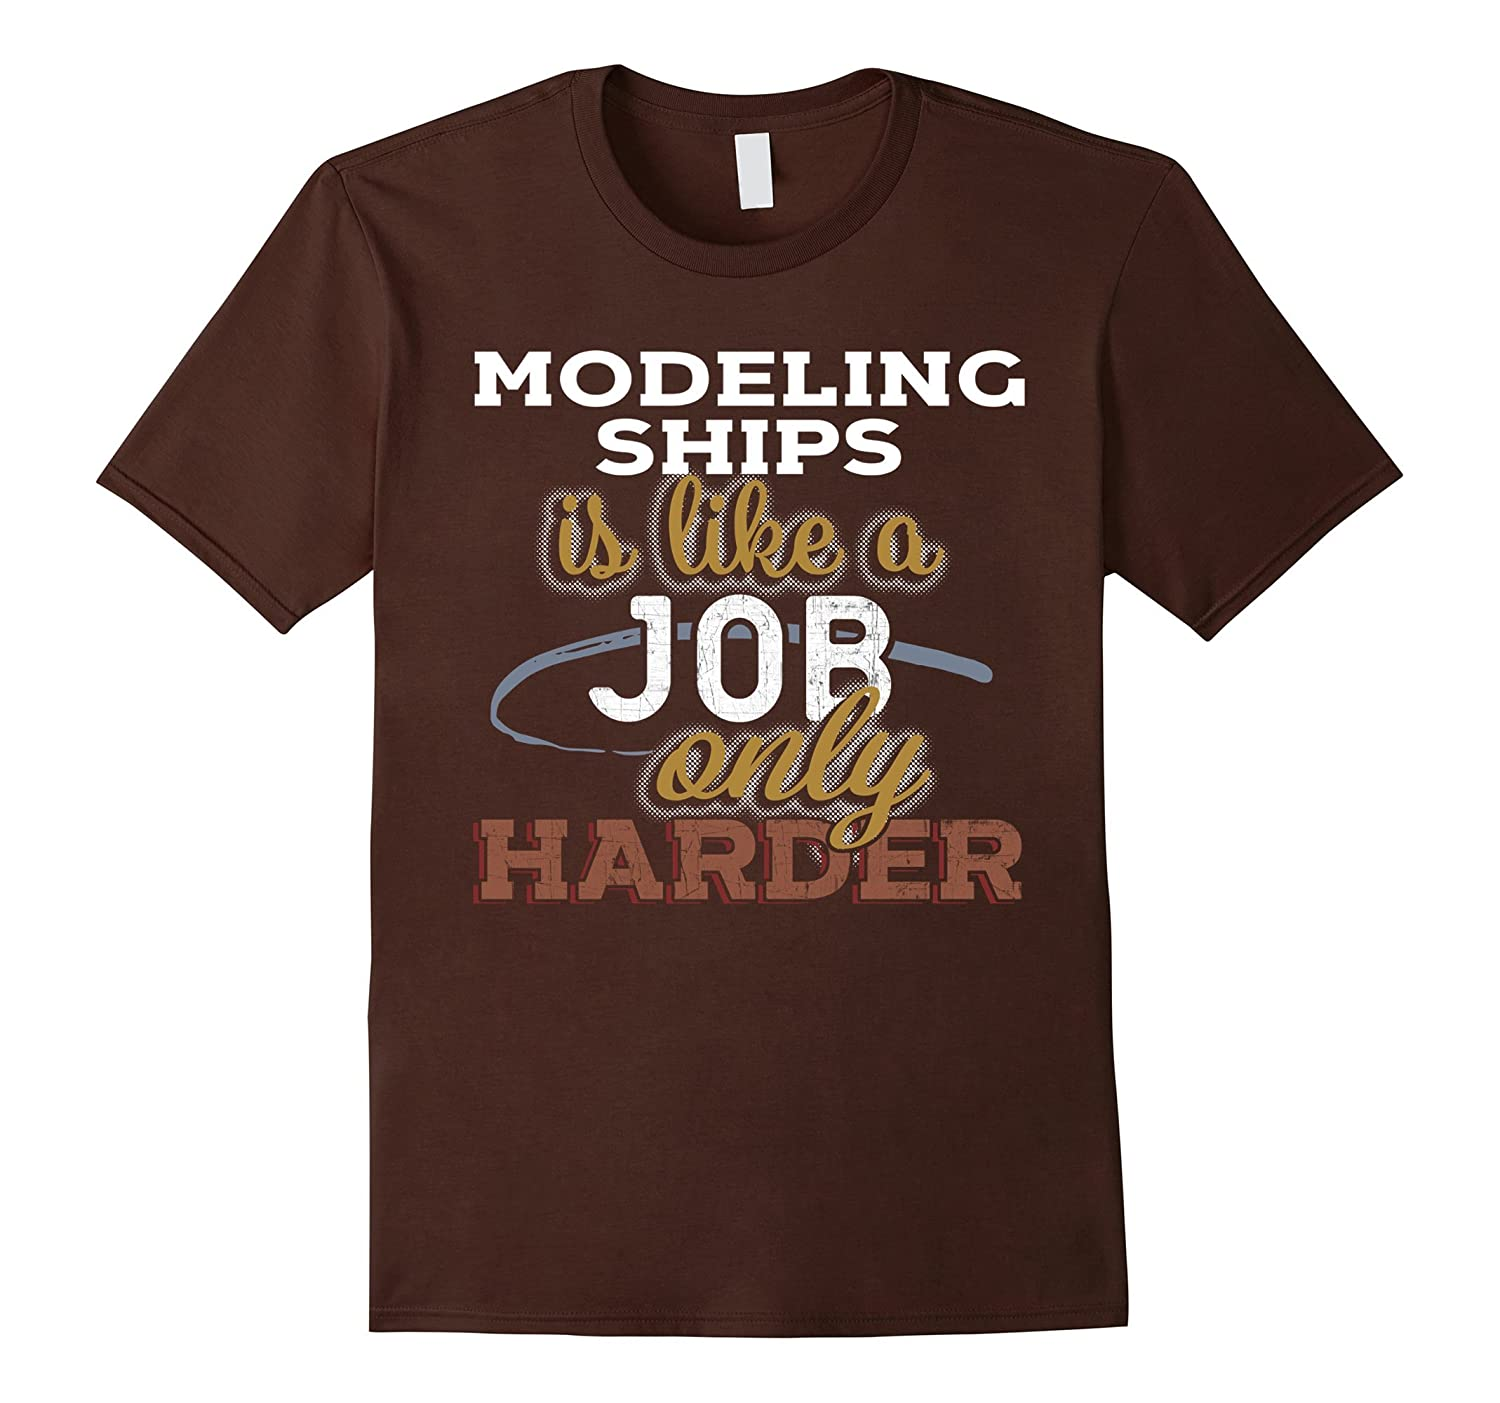 Modeling Ships is Just Like a Job Only Harder T Shirt-TJ